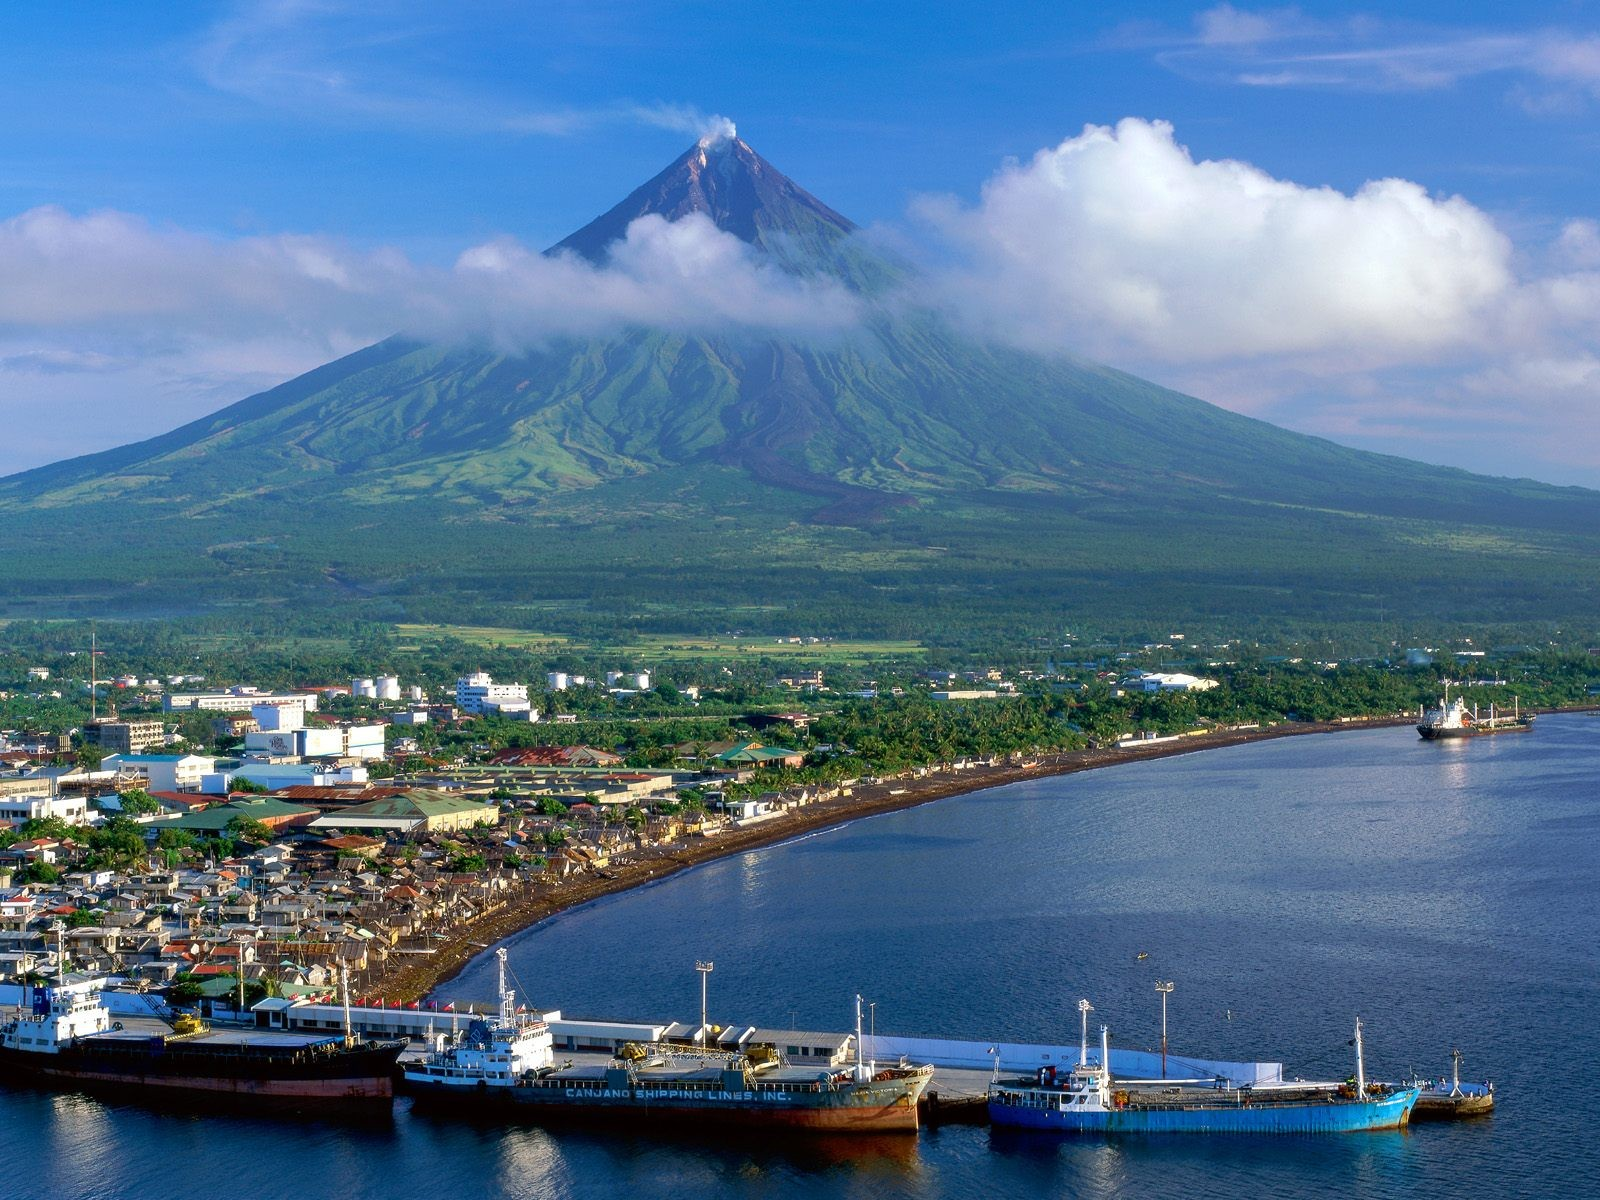 Beach Legazpi Islands Nature City Luzon Landscape Mount Philippines Mayon Wallpaper Scenes Free